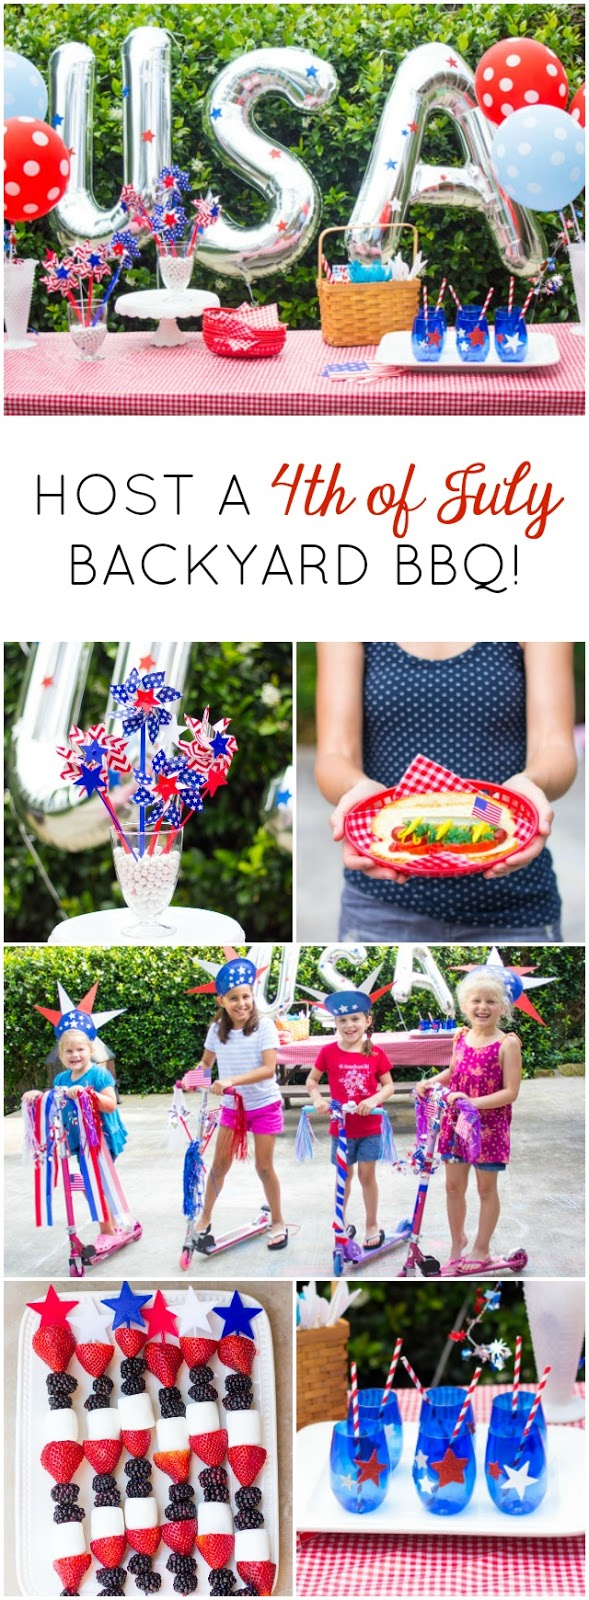 host a 4th of july party 7 simple ideas to try design improvised